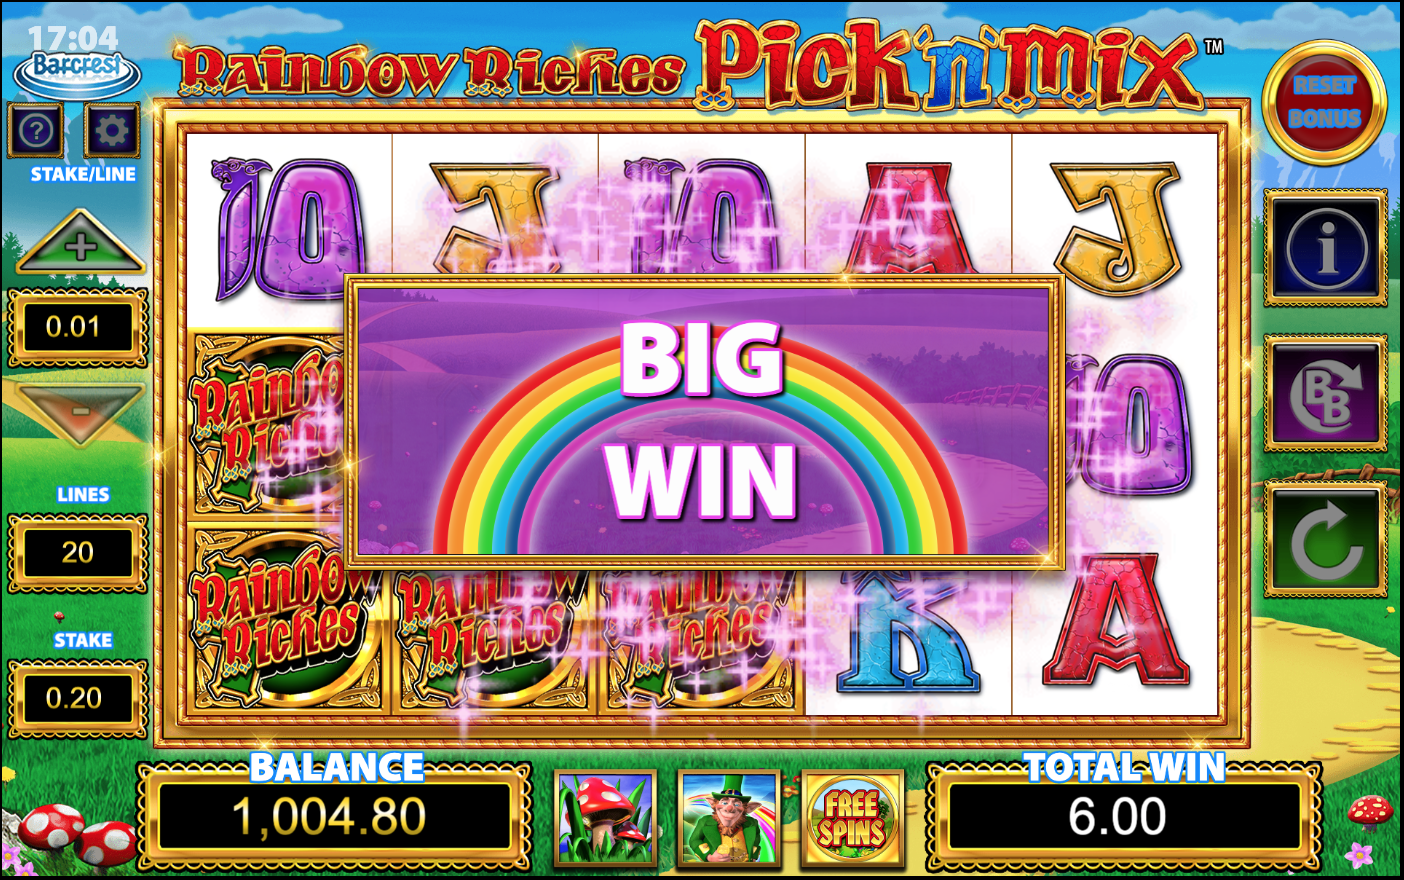 Rainbow Riches Pick'n'Mix big win